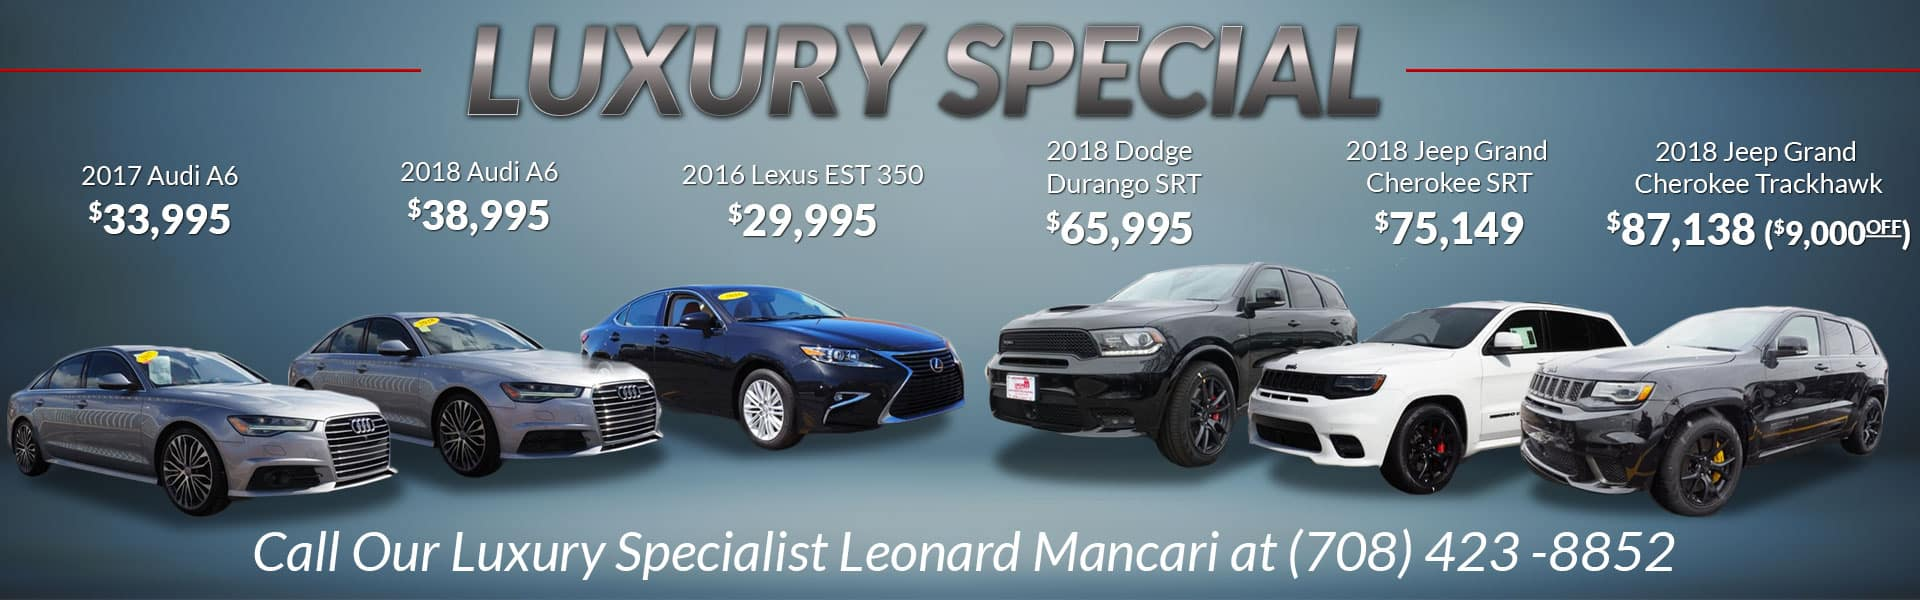 Luxury Special at Mancari's